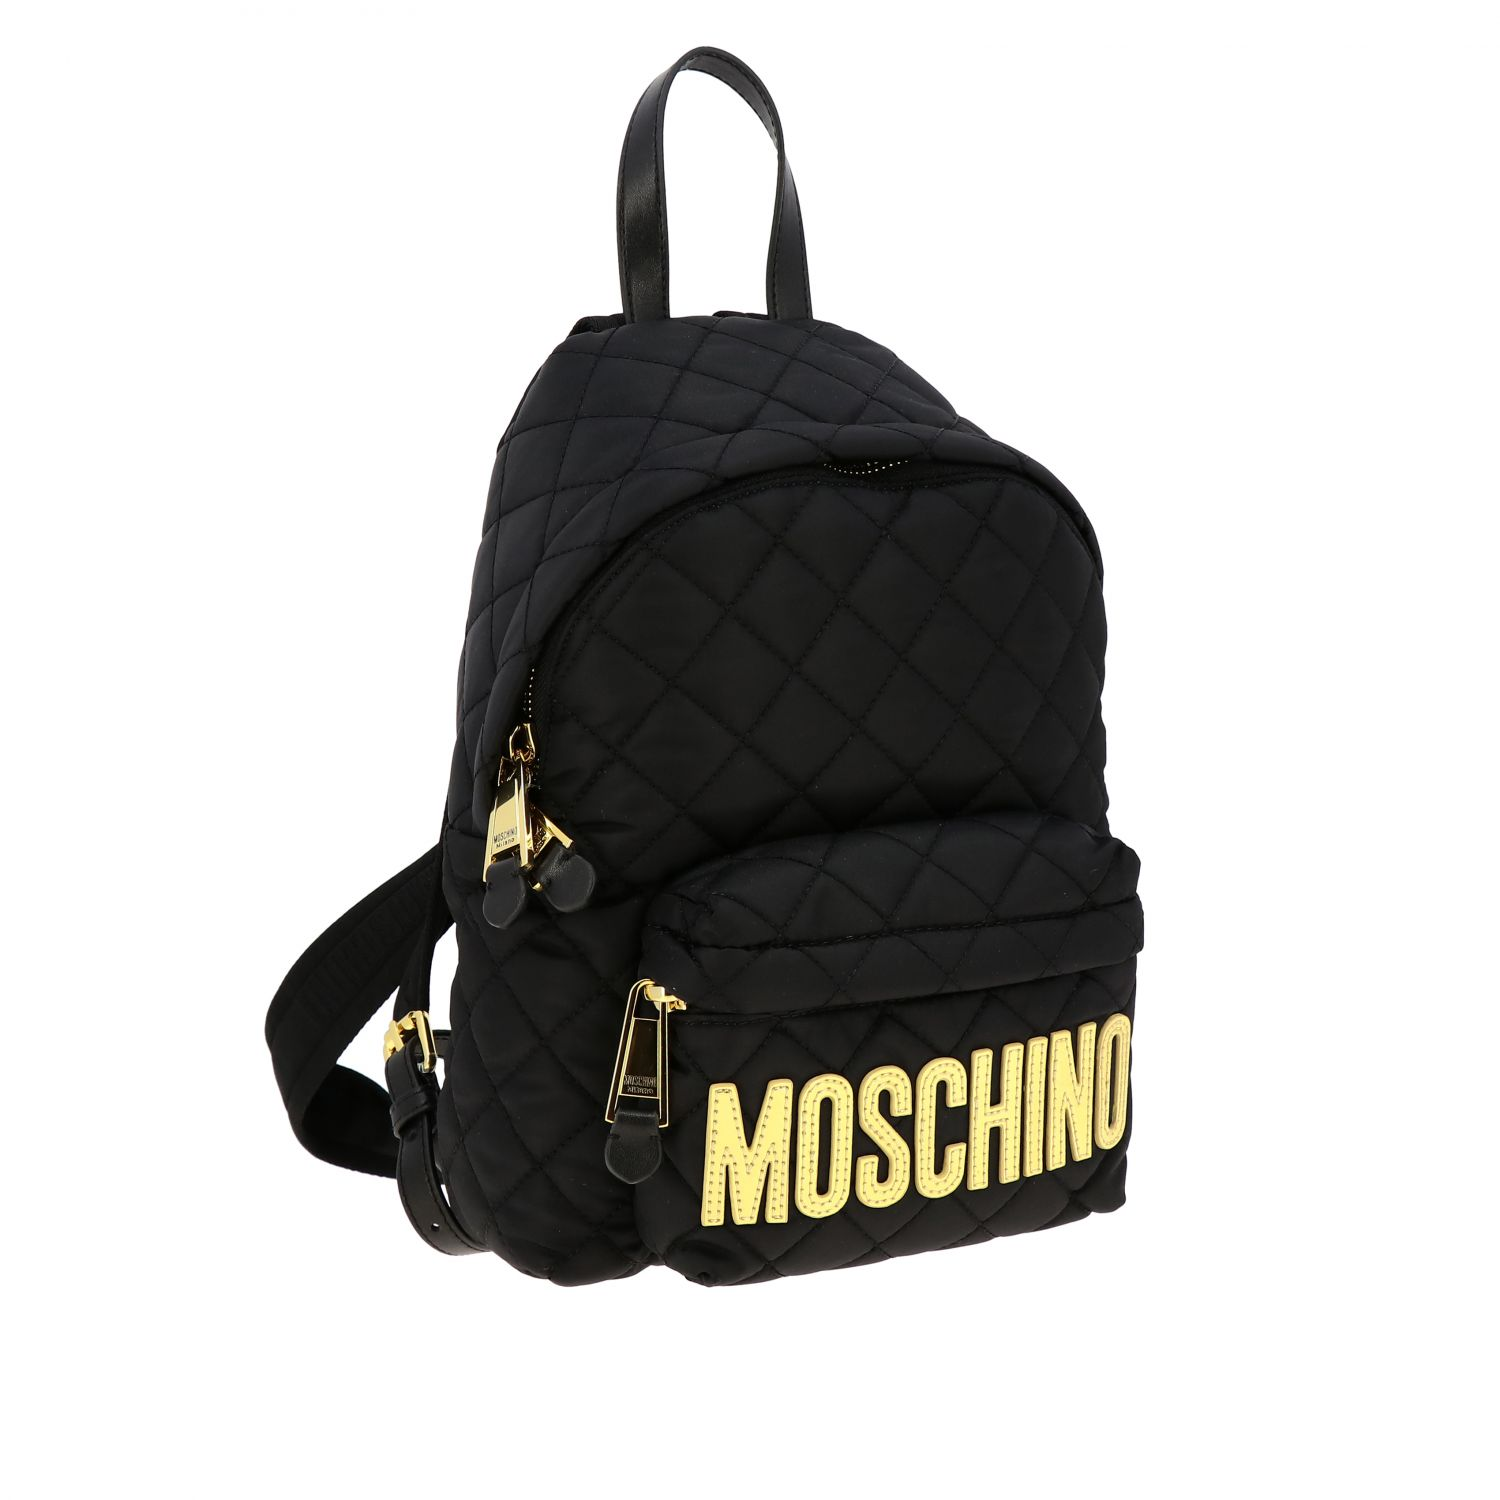 Zaino Moschino Couture in nylon trapuntato con big logo nero 3